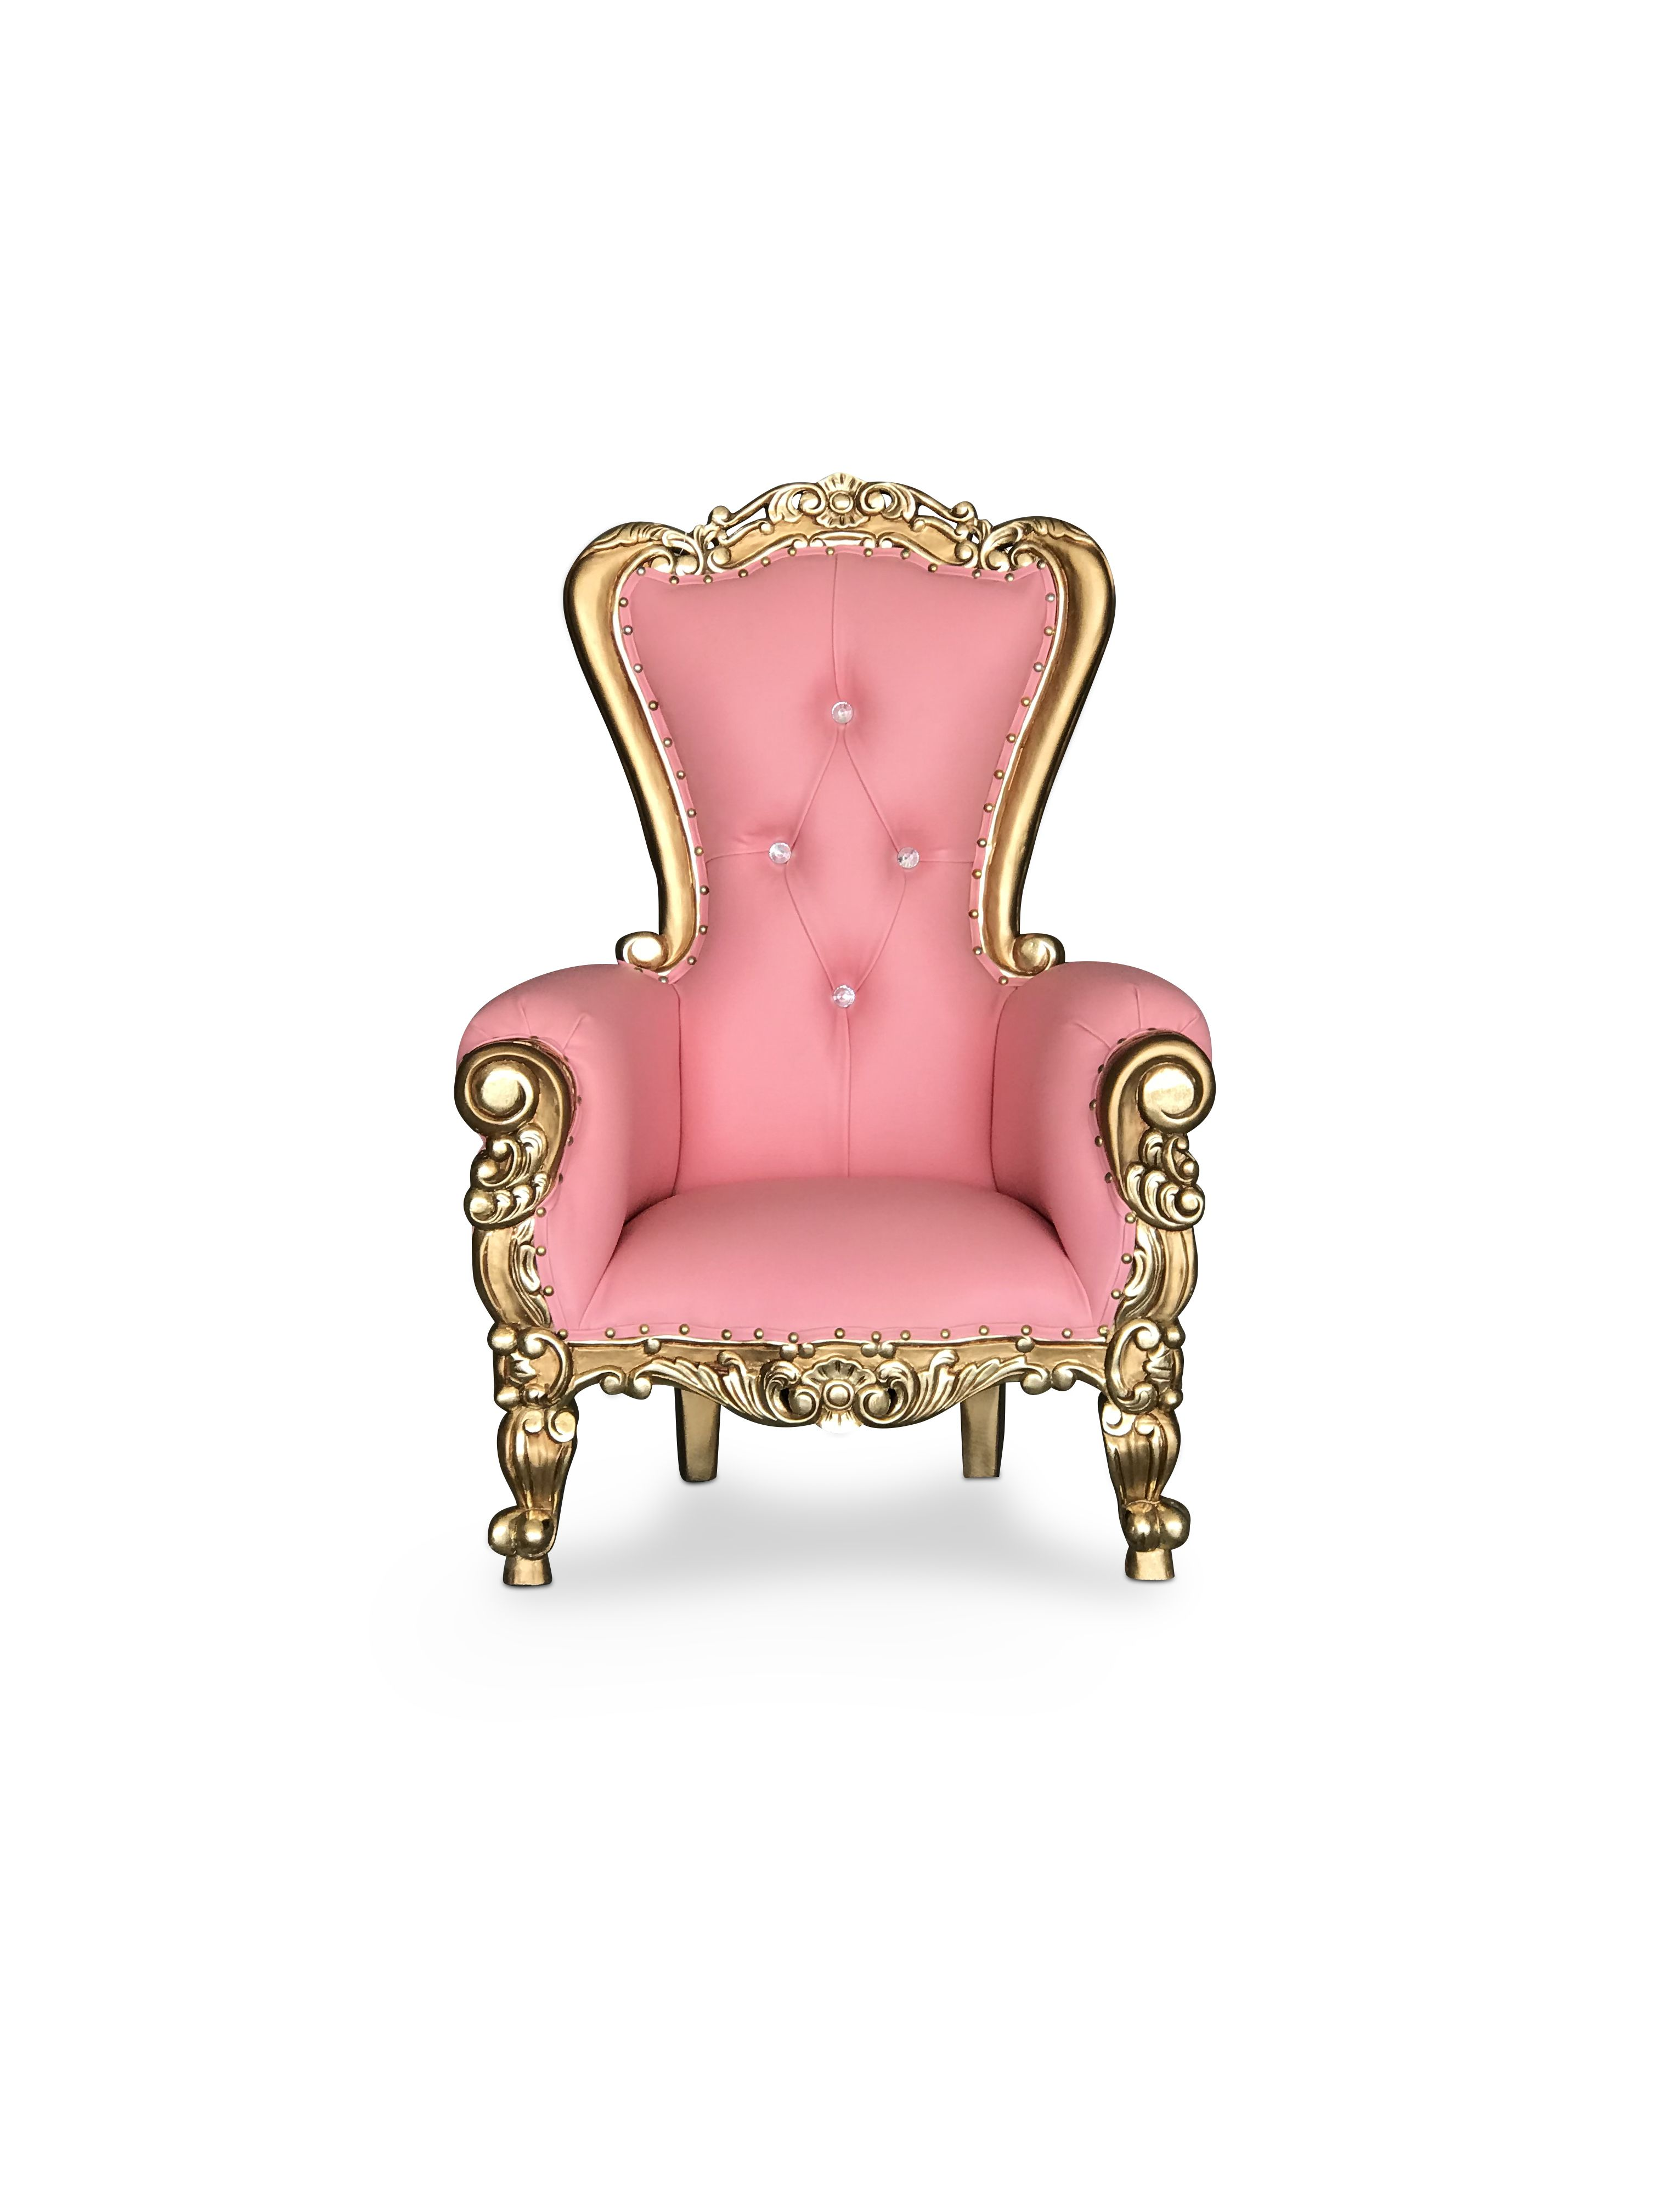 Chiseled Perfections Royal King Queen Throne Chairs Baroque Inspired Furniture Throne Chair Chair Throne Chair Wedding